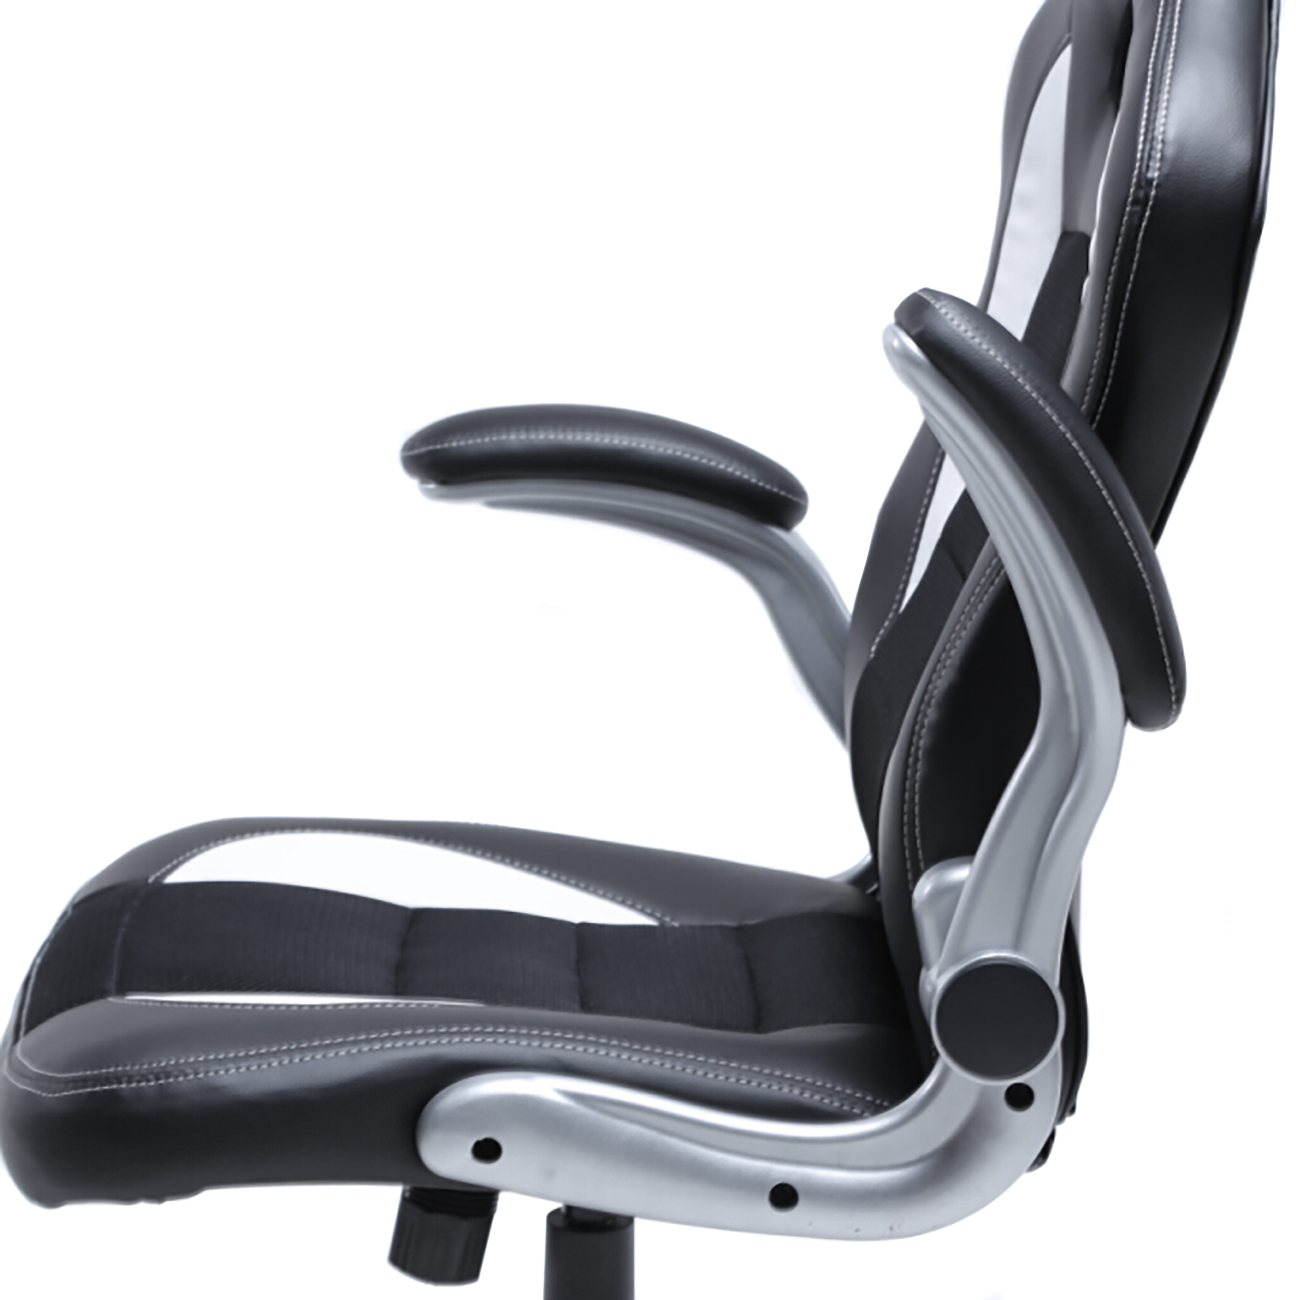 Office Chair Armrest Office-Racing-Chair-Bucket-Seat-High-Back-Ergonomic-